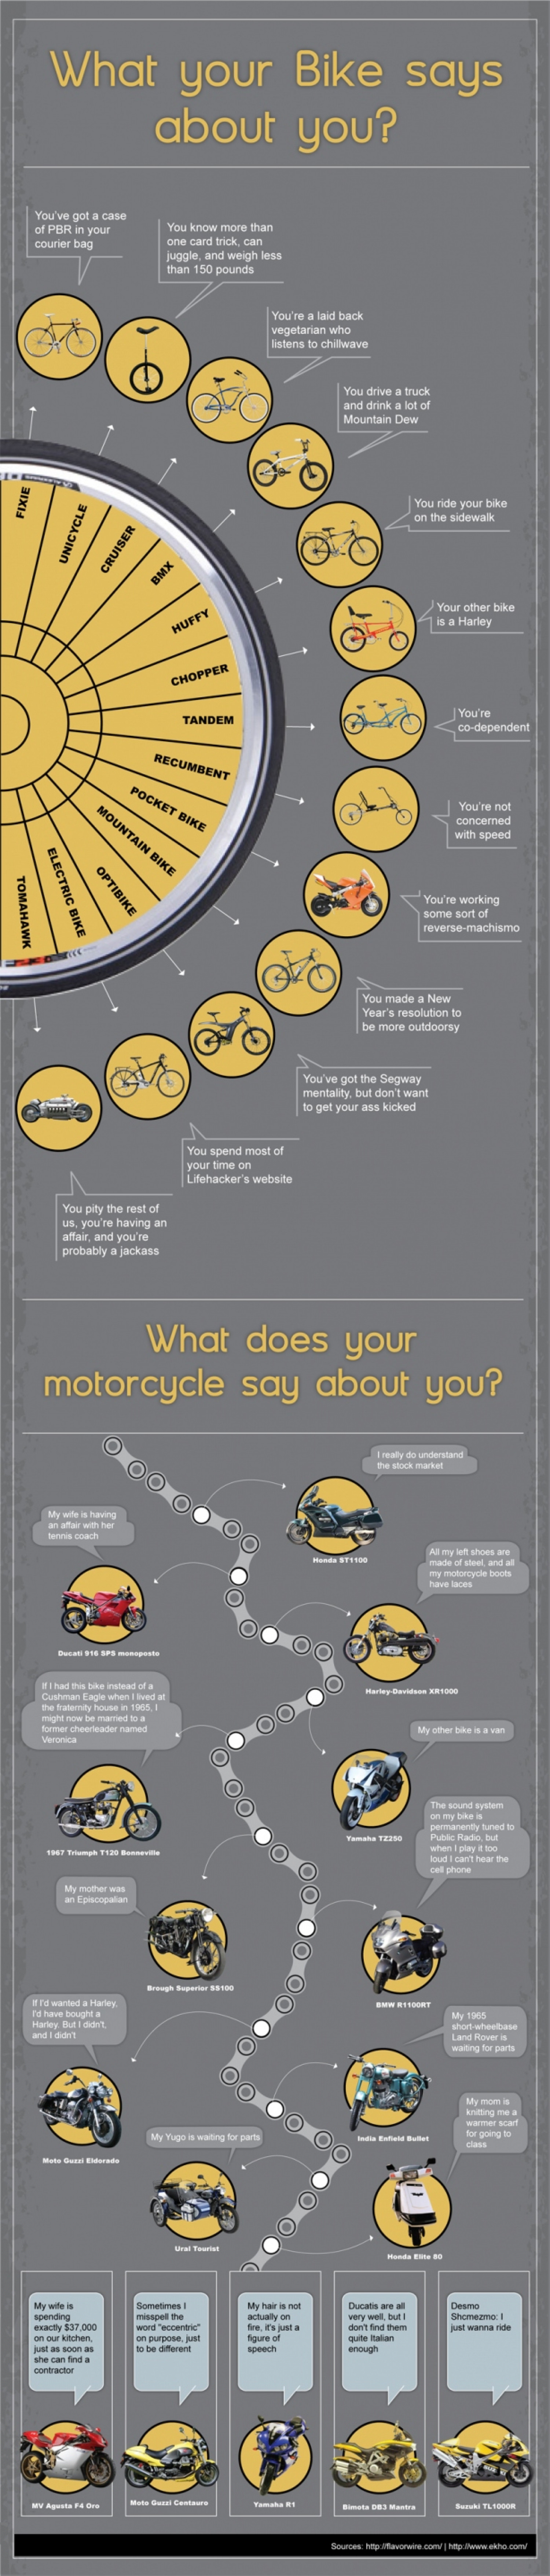 What does your bike say about you? Infographic